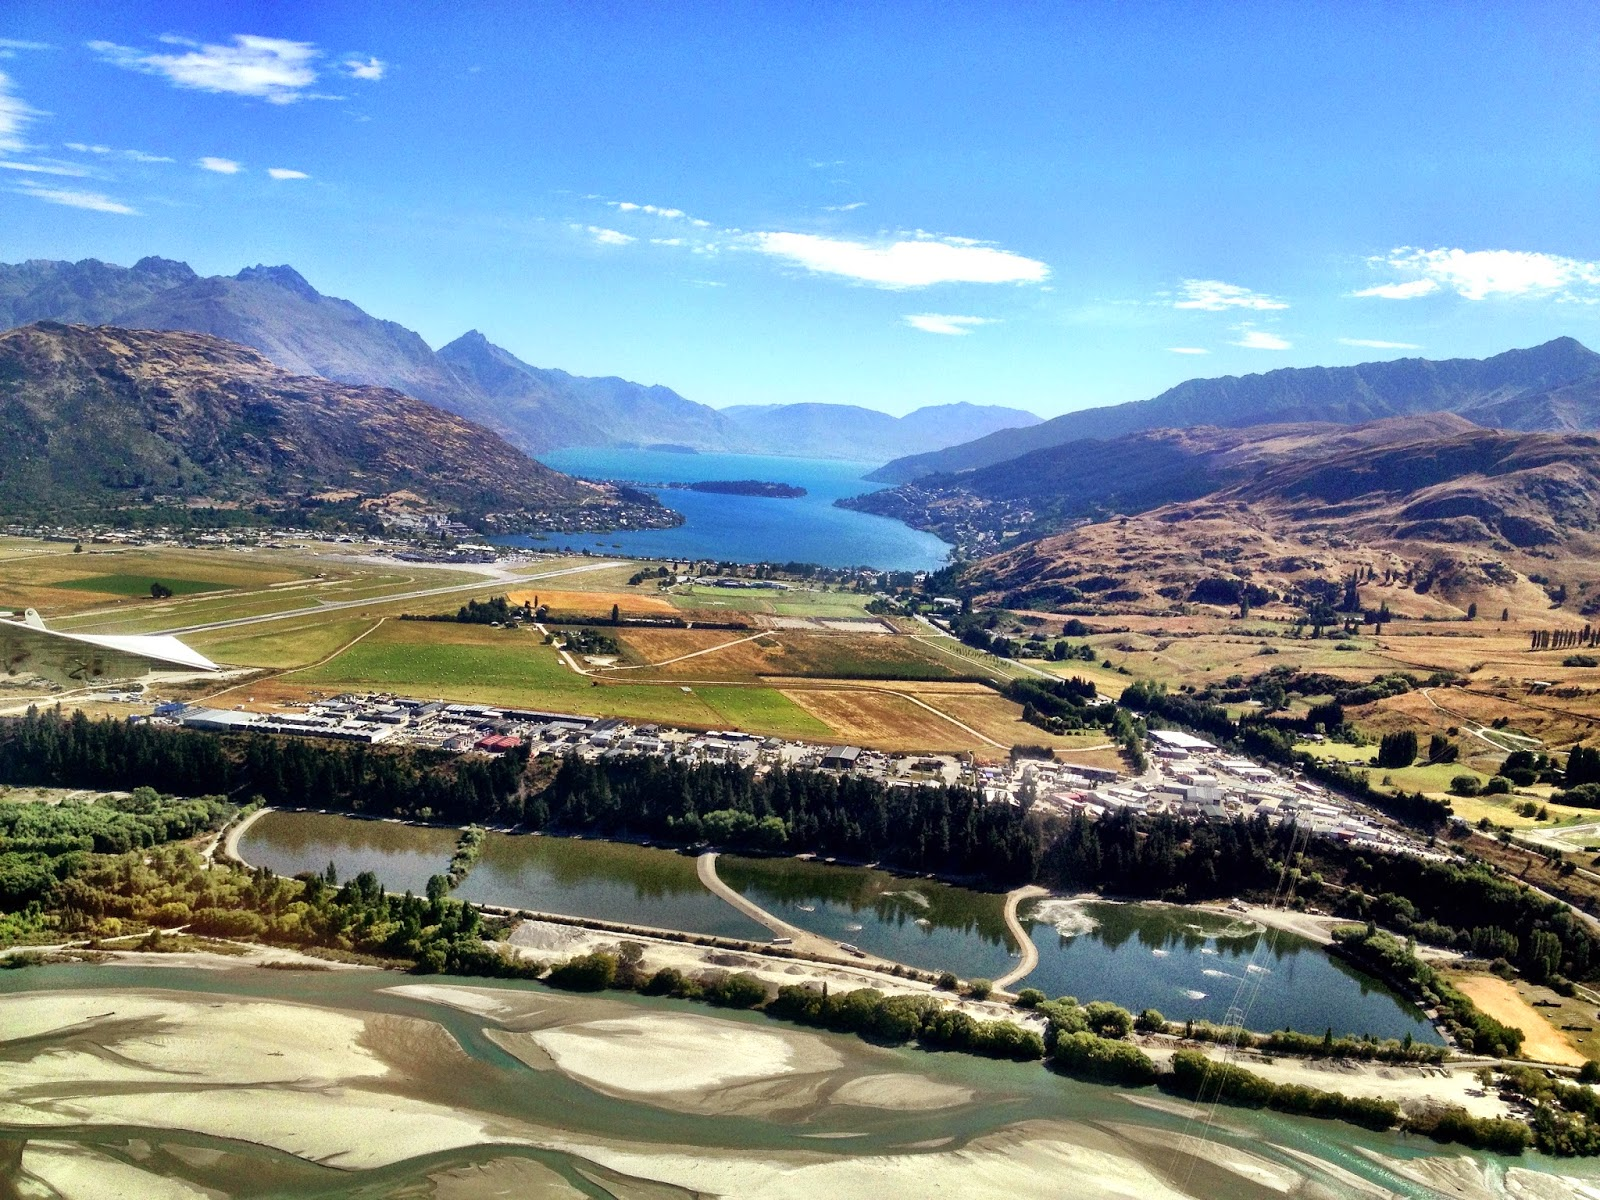 Queenstown Airport approach, New Zealand